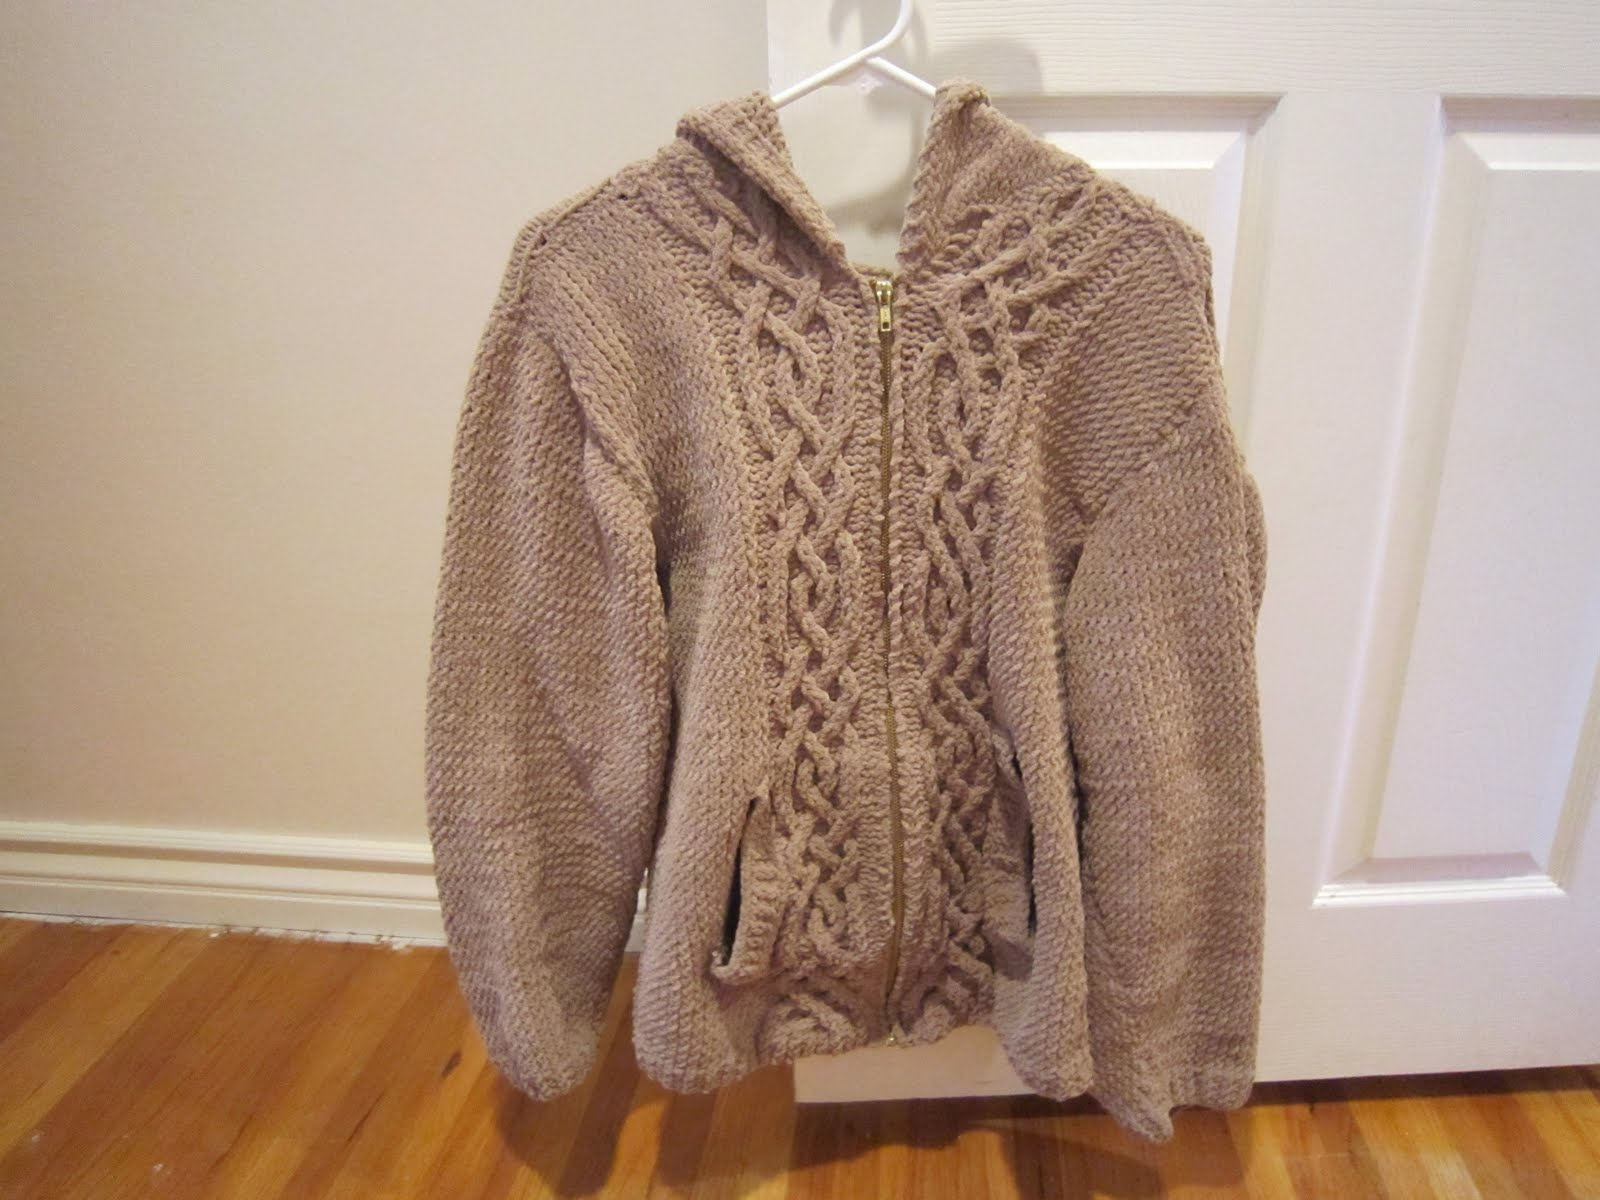 In My Pajamas: Knitted Jacket with Celtic Cable Pattern